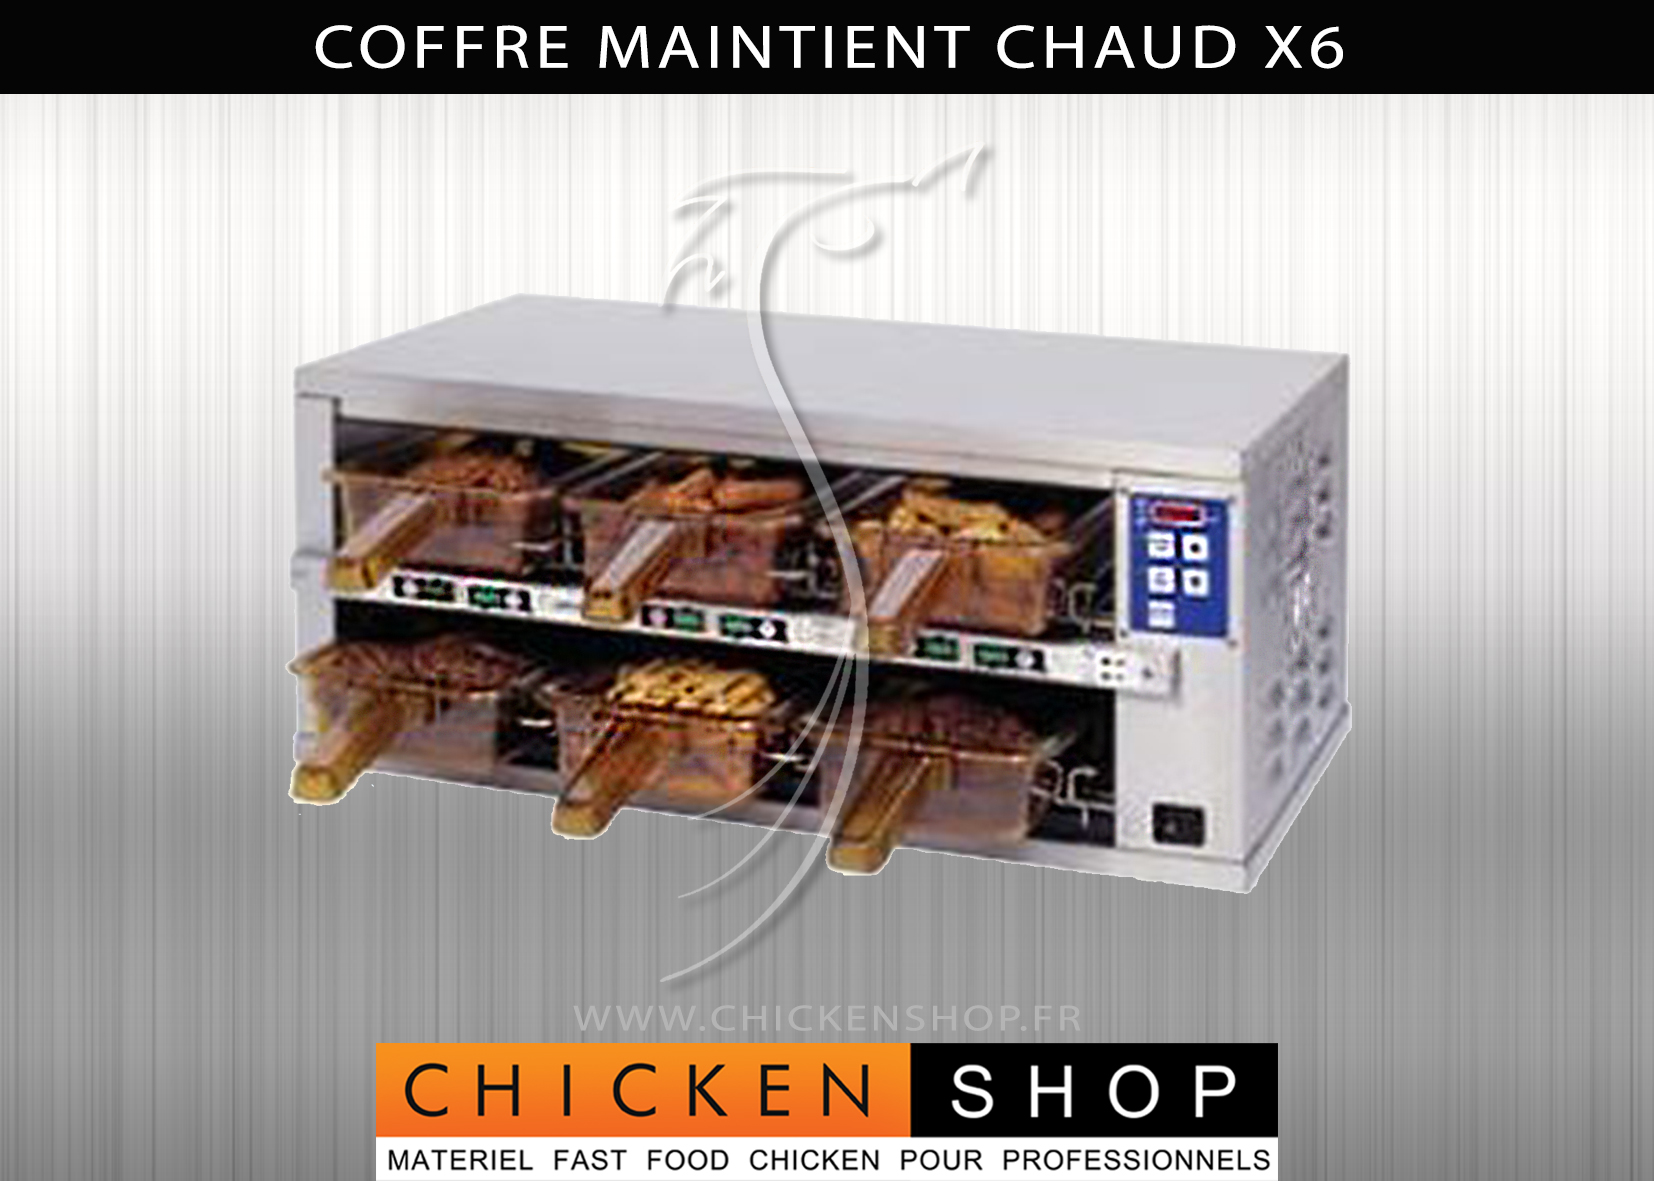 Coffre Maintient Chaud